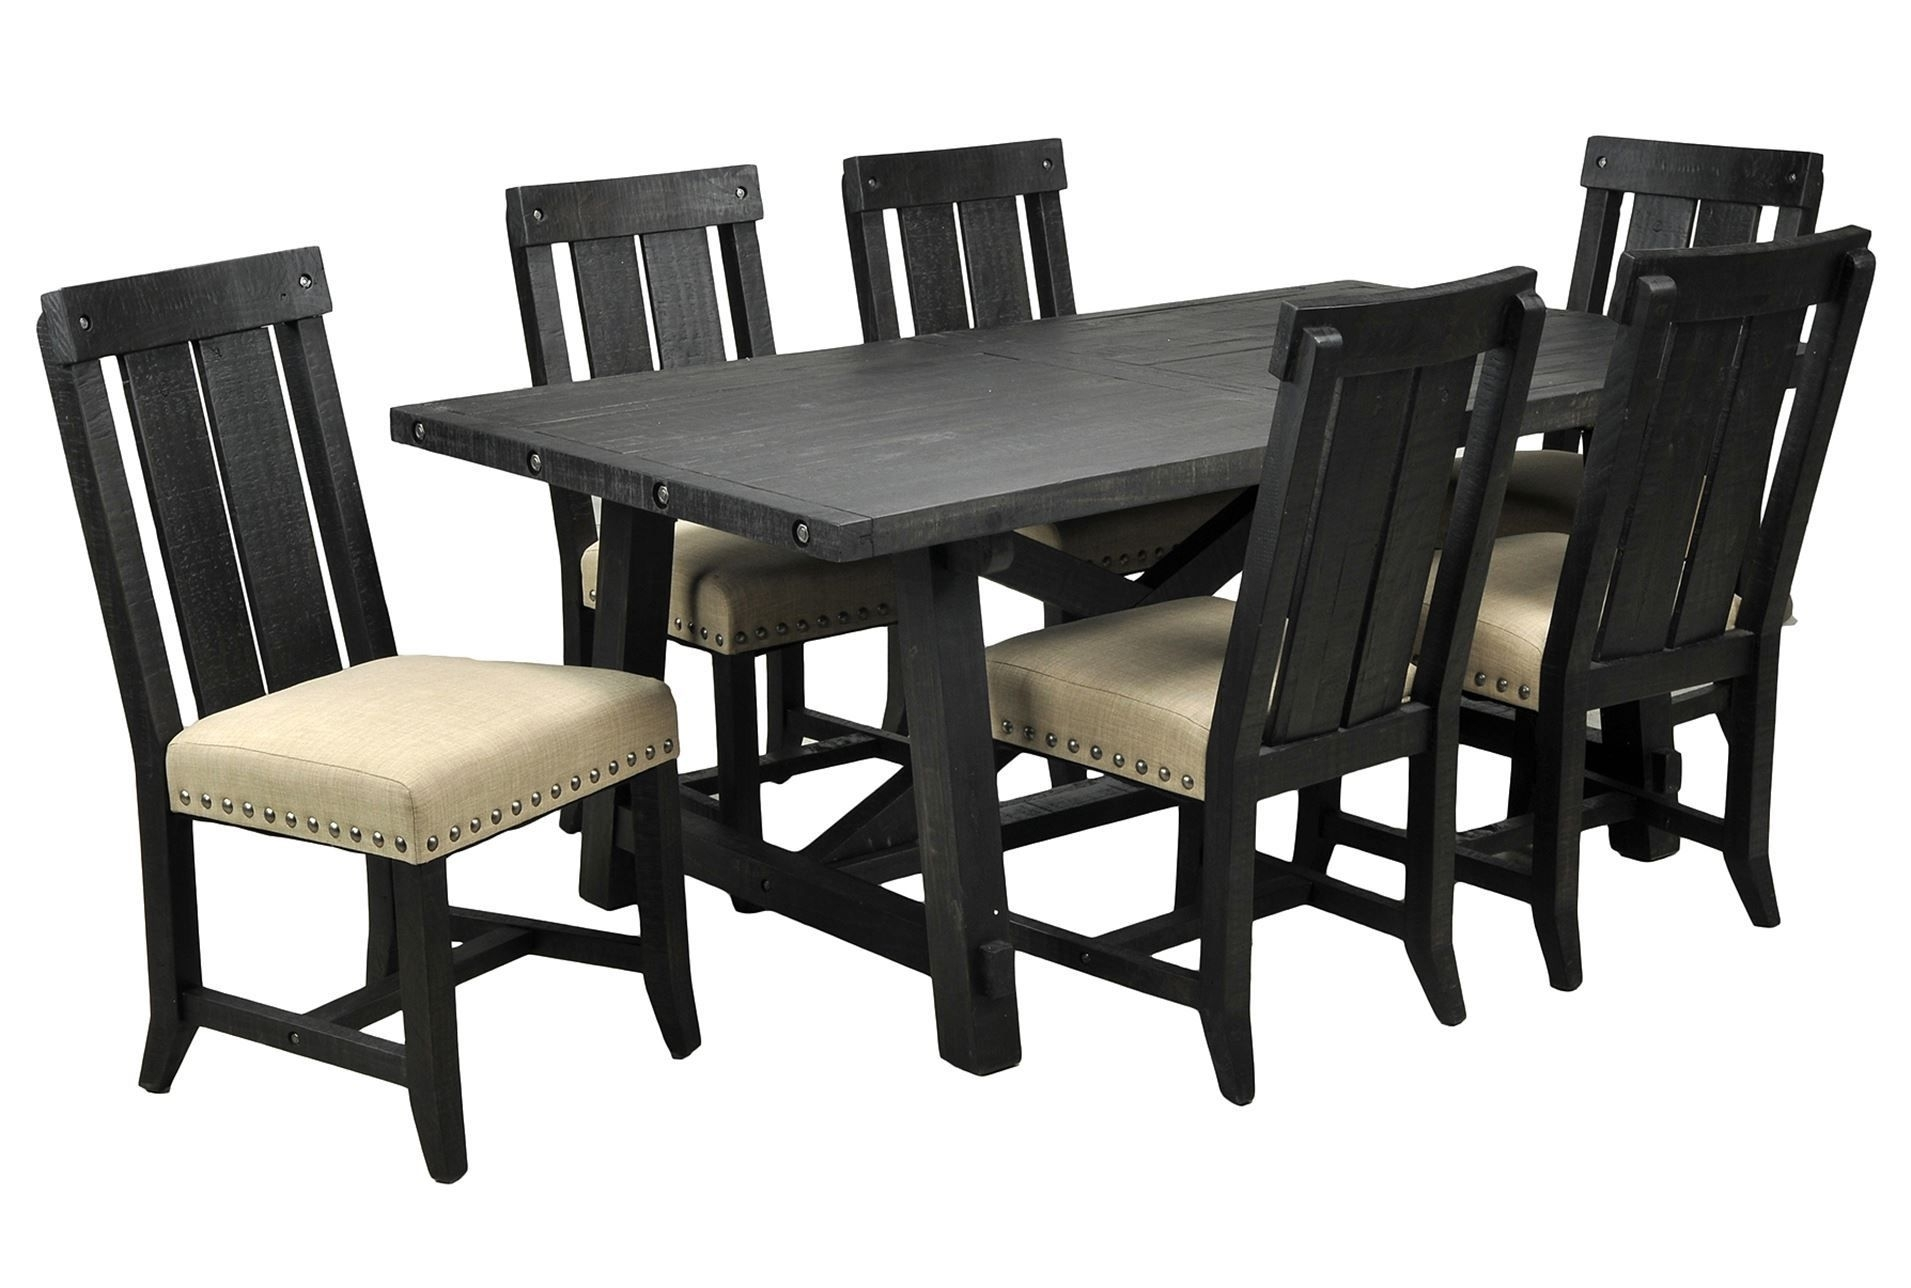 Jaxon 7 Piece Rectangle Dining Set W/wood Chairs | For The House I Regarding Most Up To Date Craftsman 9 Piece Extension Dining Sets With Uph Side Chairs (View 13 of 20)